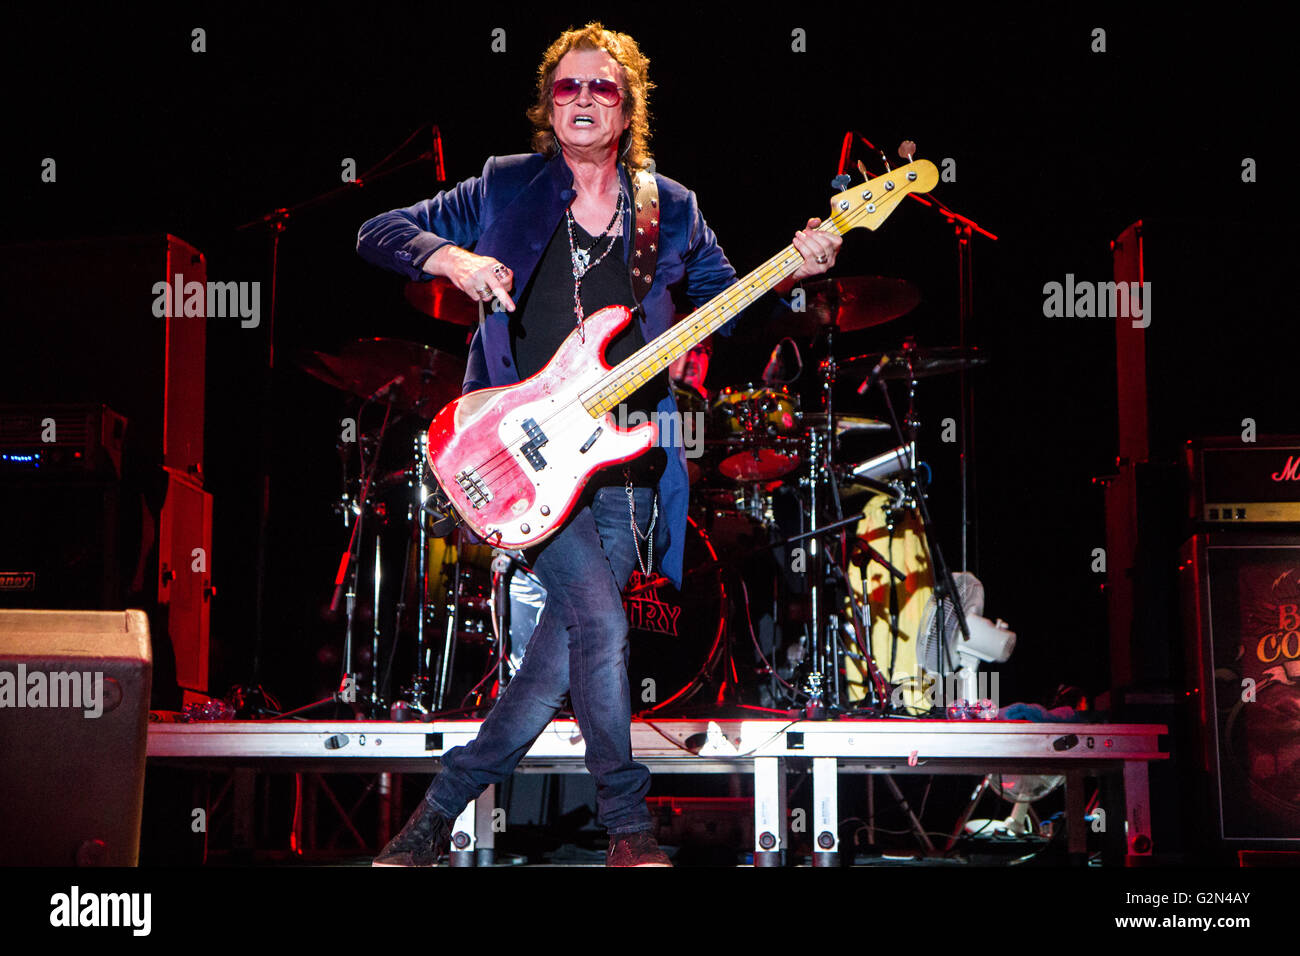 Vigevano Italy. 28th June 2011. The English-American supergroup BLACK COUNTRY COMMUNION performs live on stage at - Stock Image